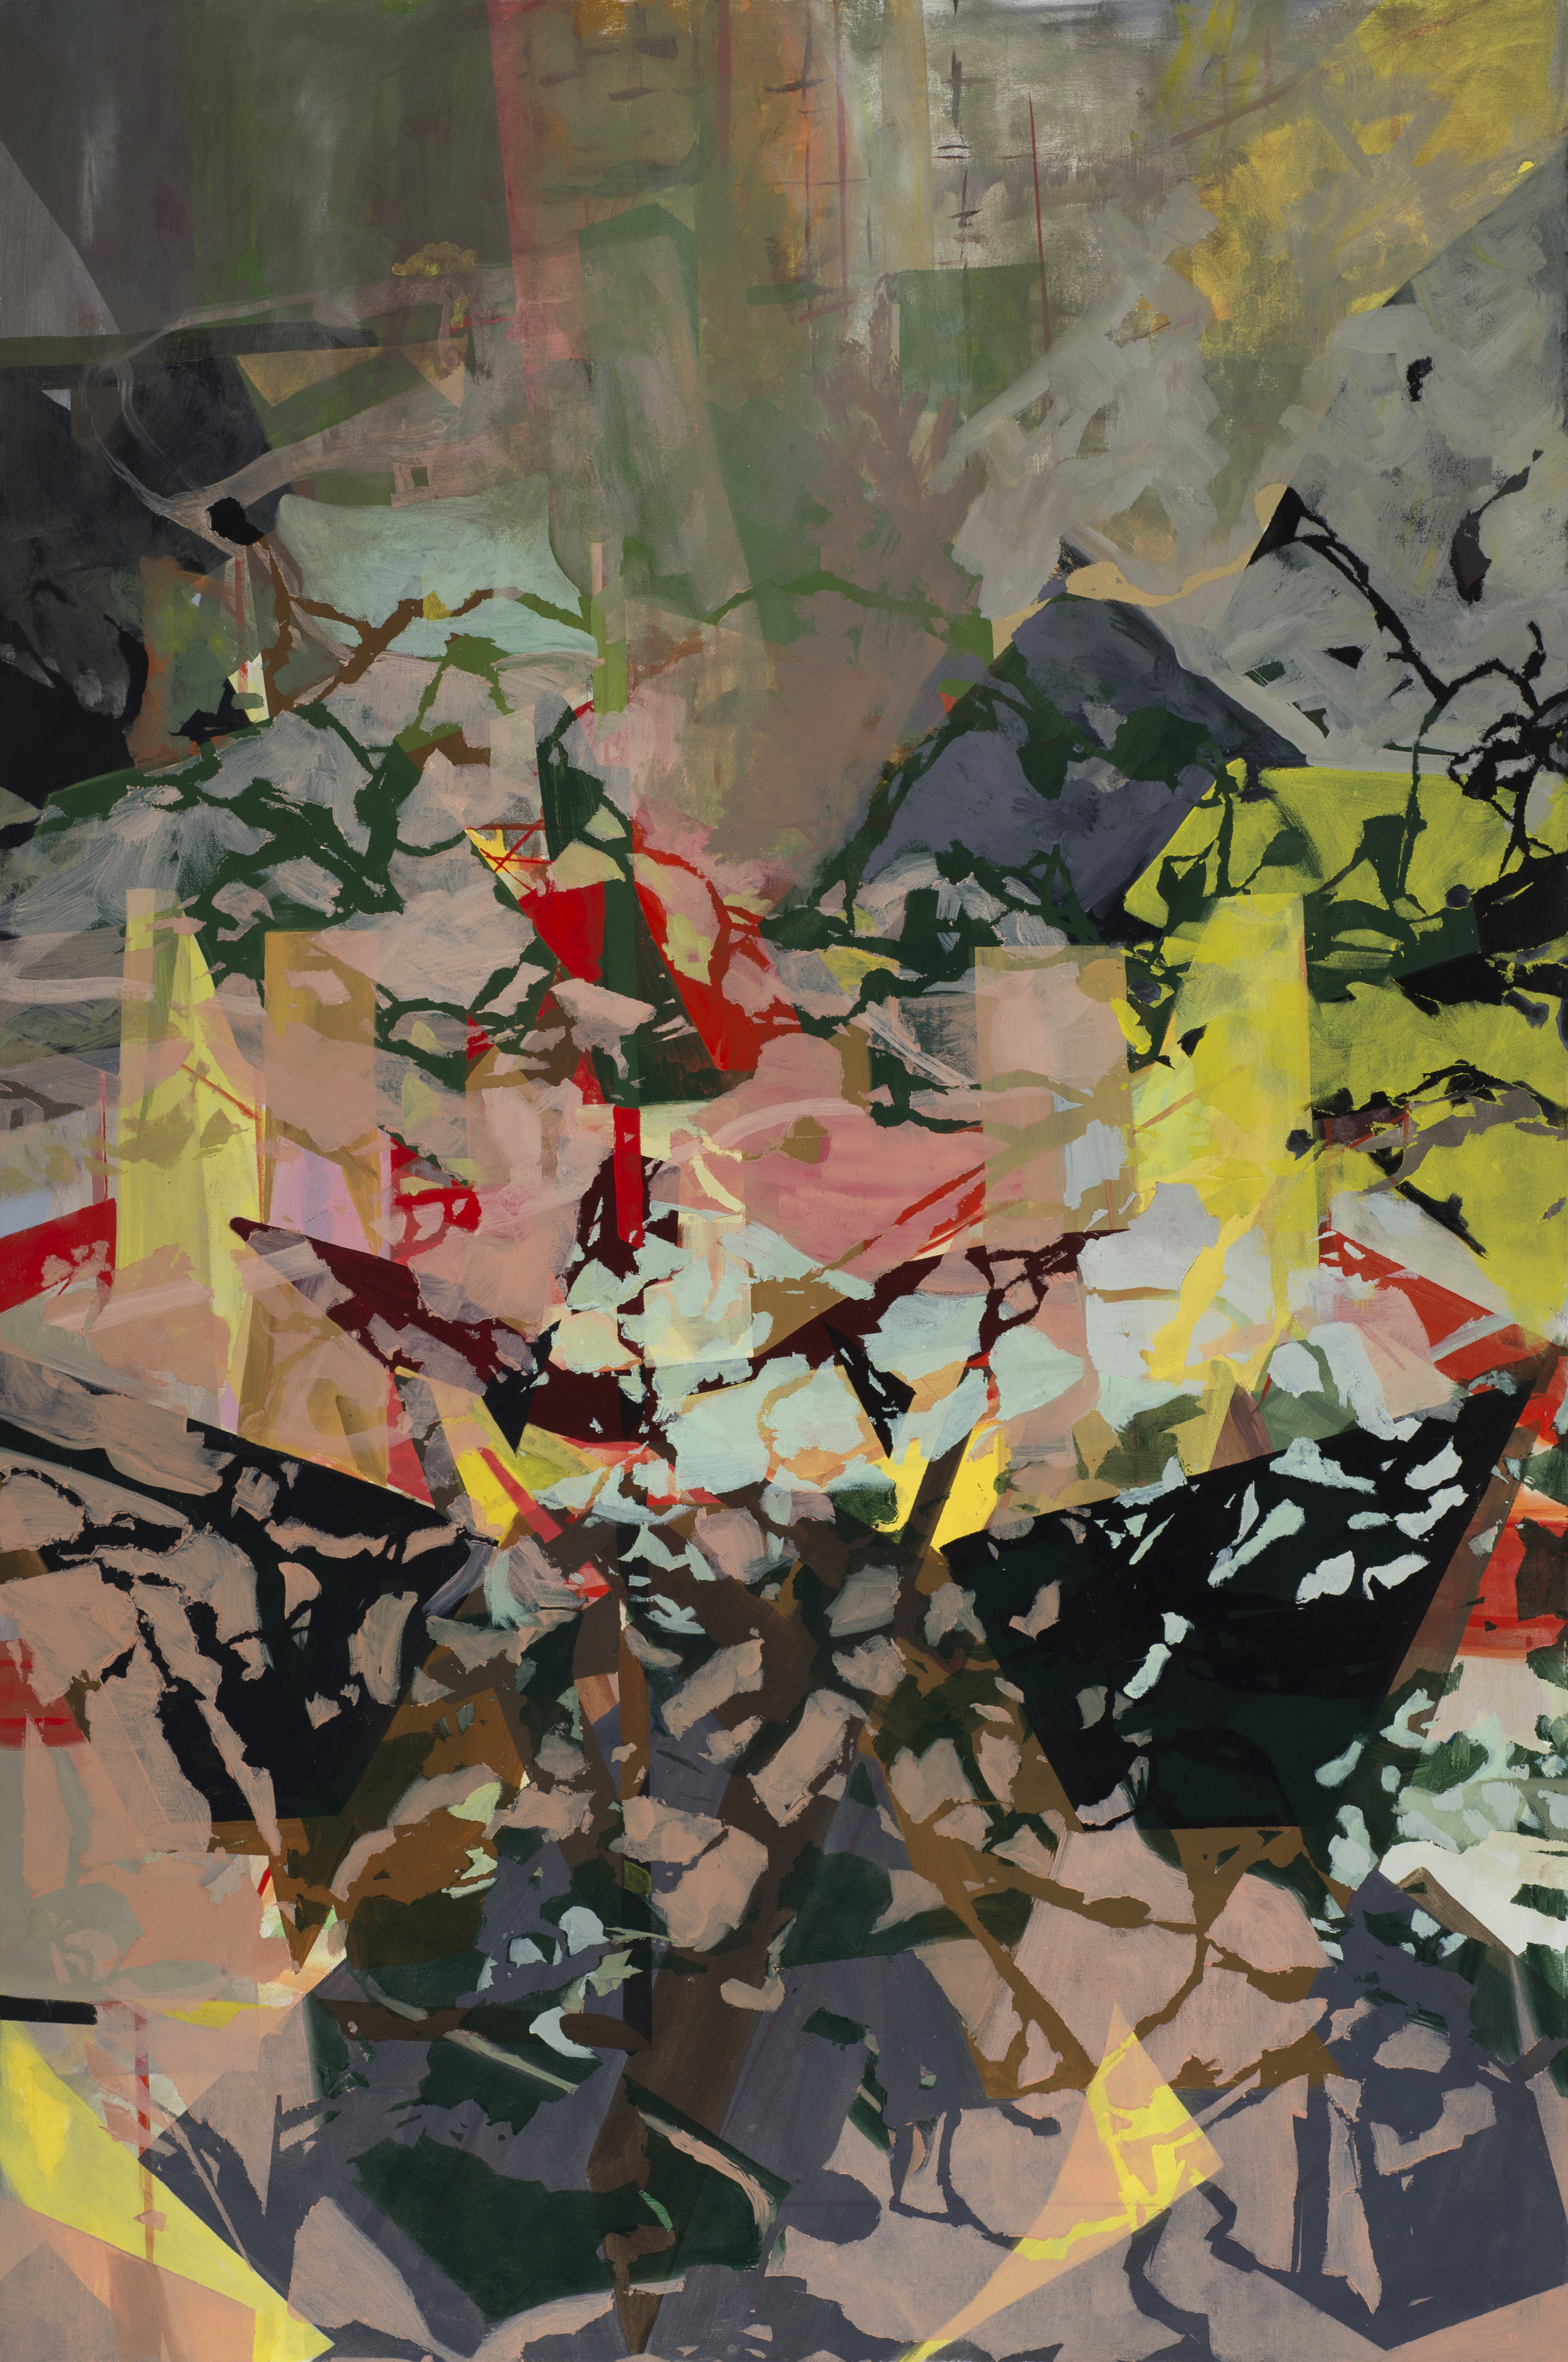 student work, david andree, student work, angela korbe, perception into abstraction, stage 7, 2017, oil on canvas, 48x72in.jpg